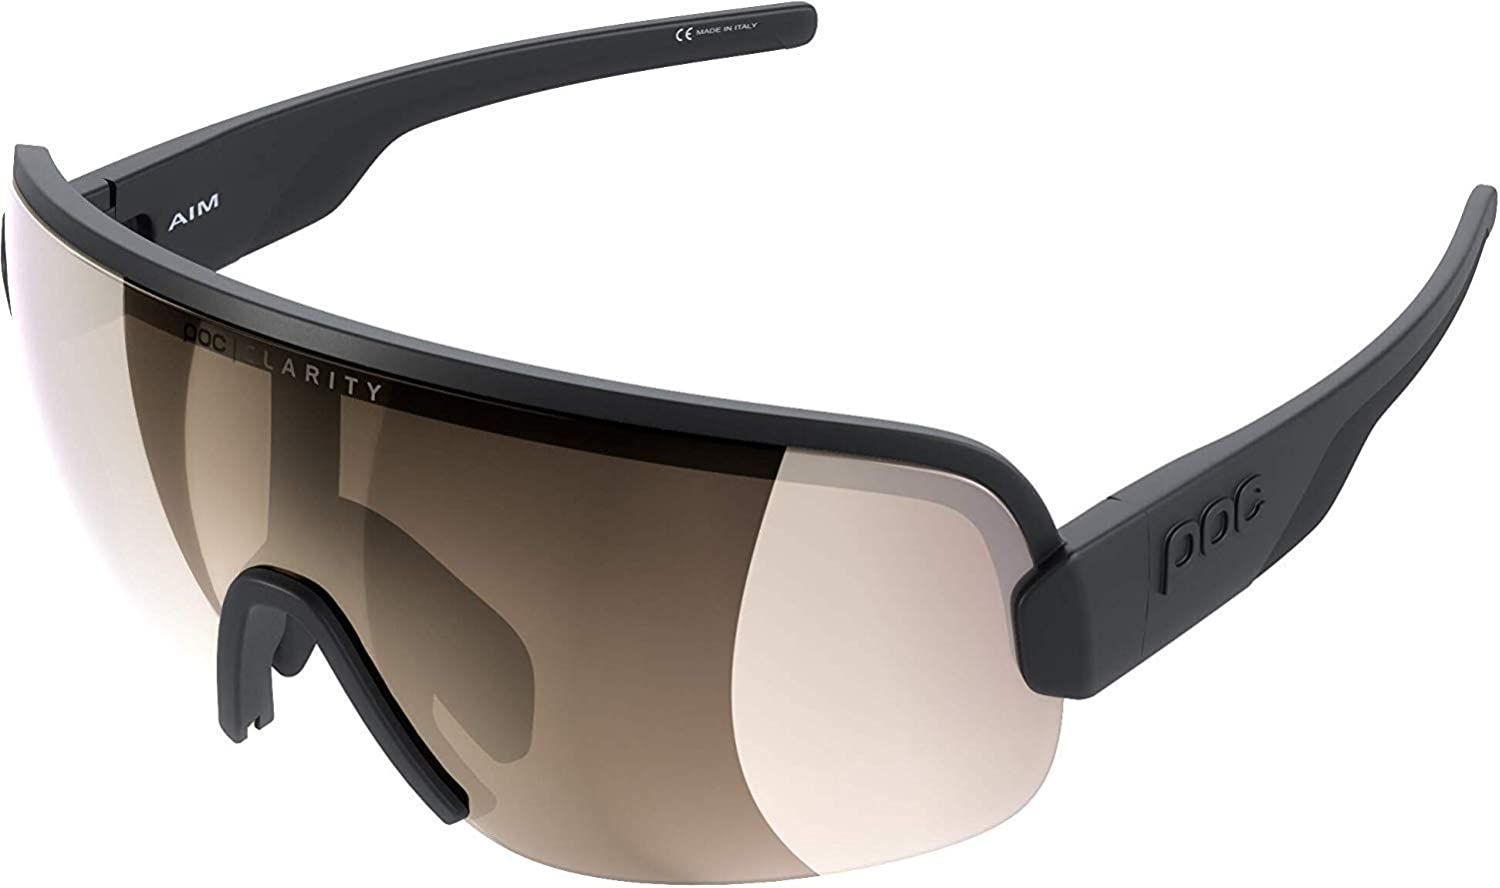 POC, Aim Sunglasses